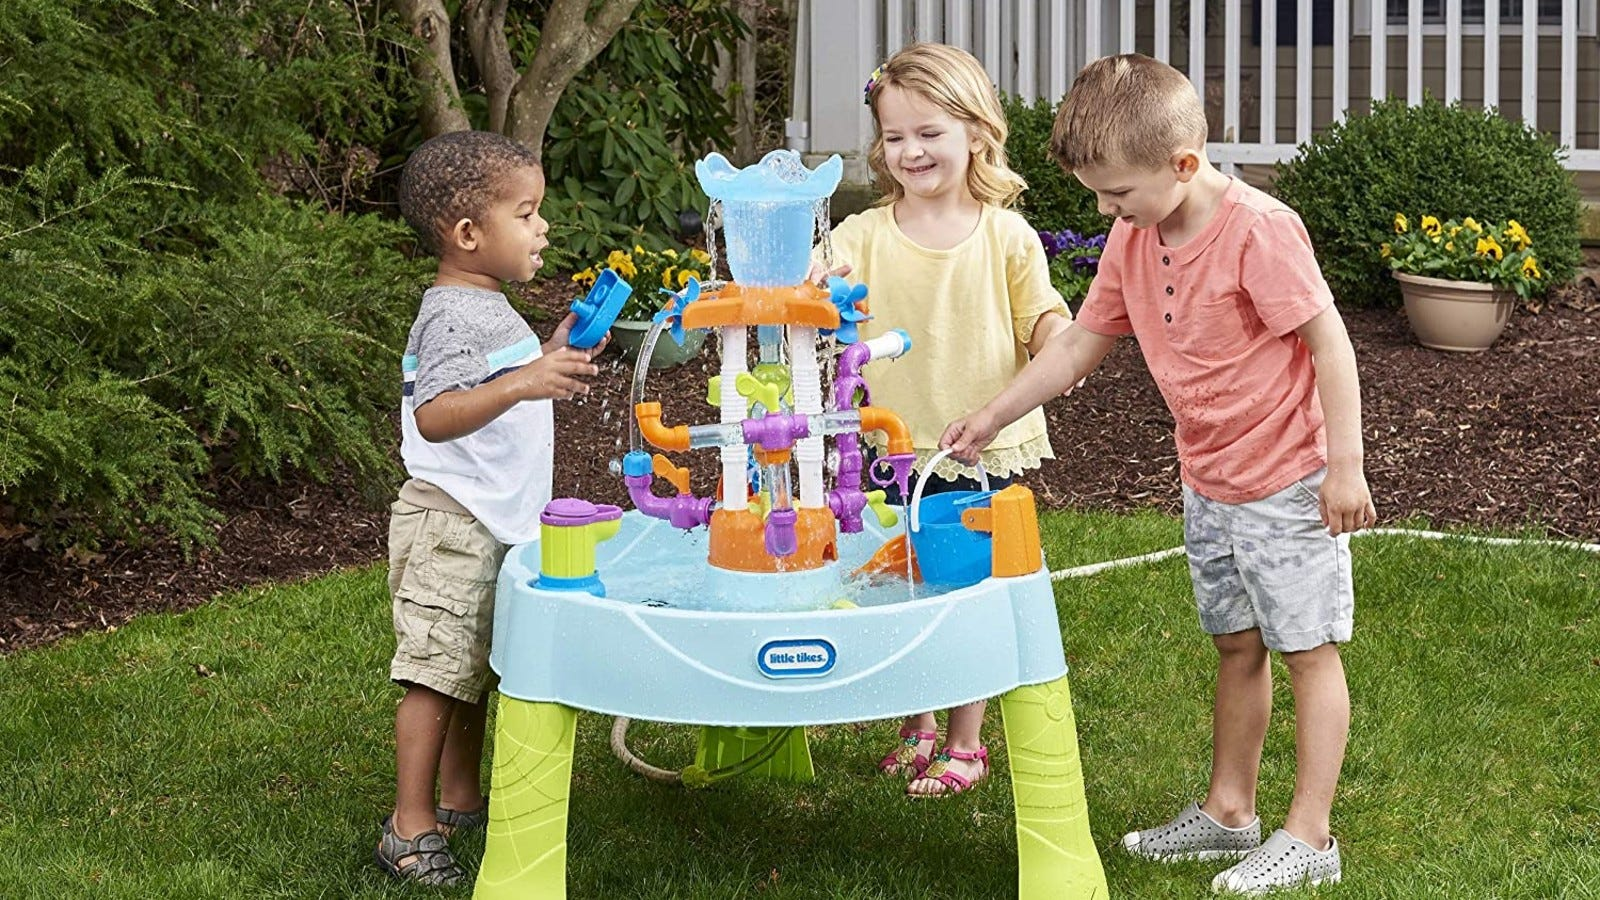 blue water table with three kids standing around it playing